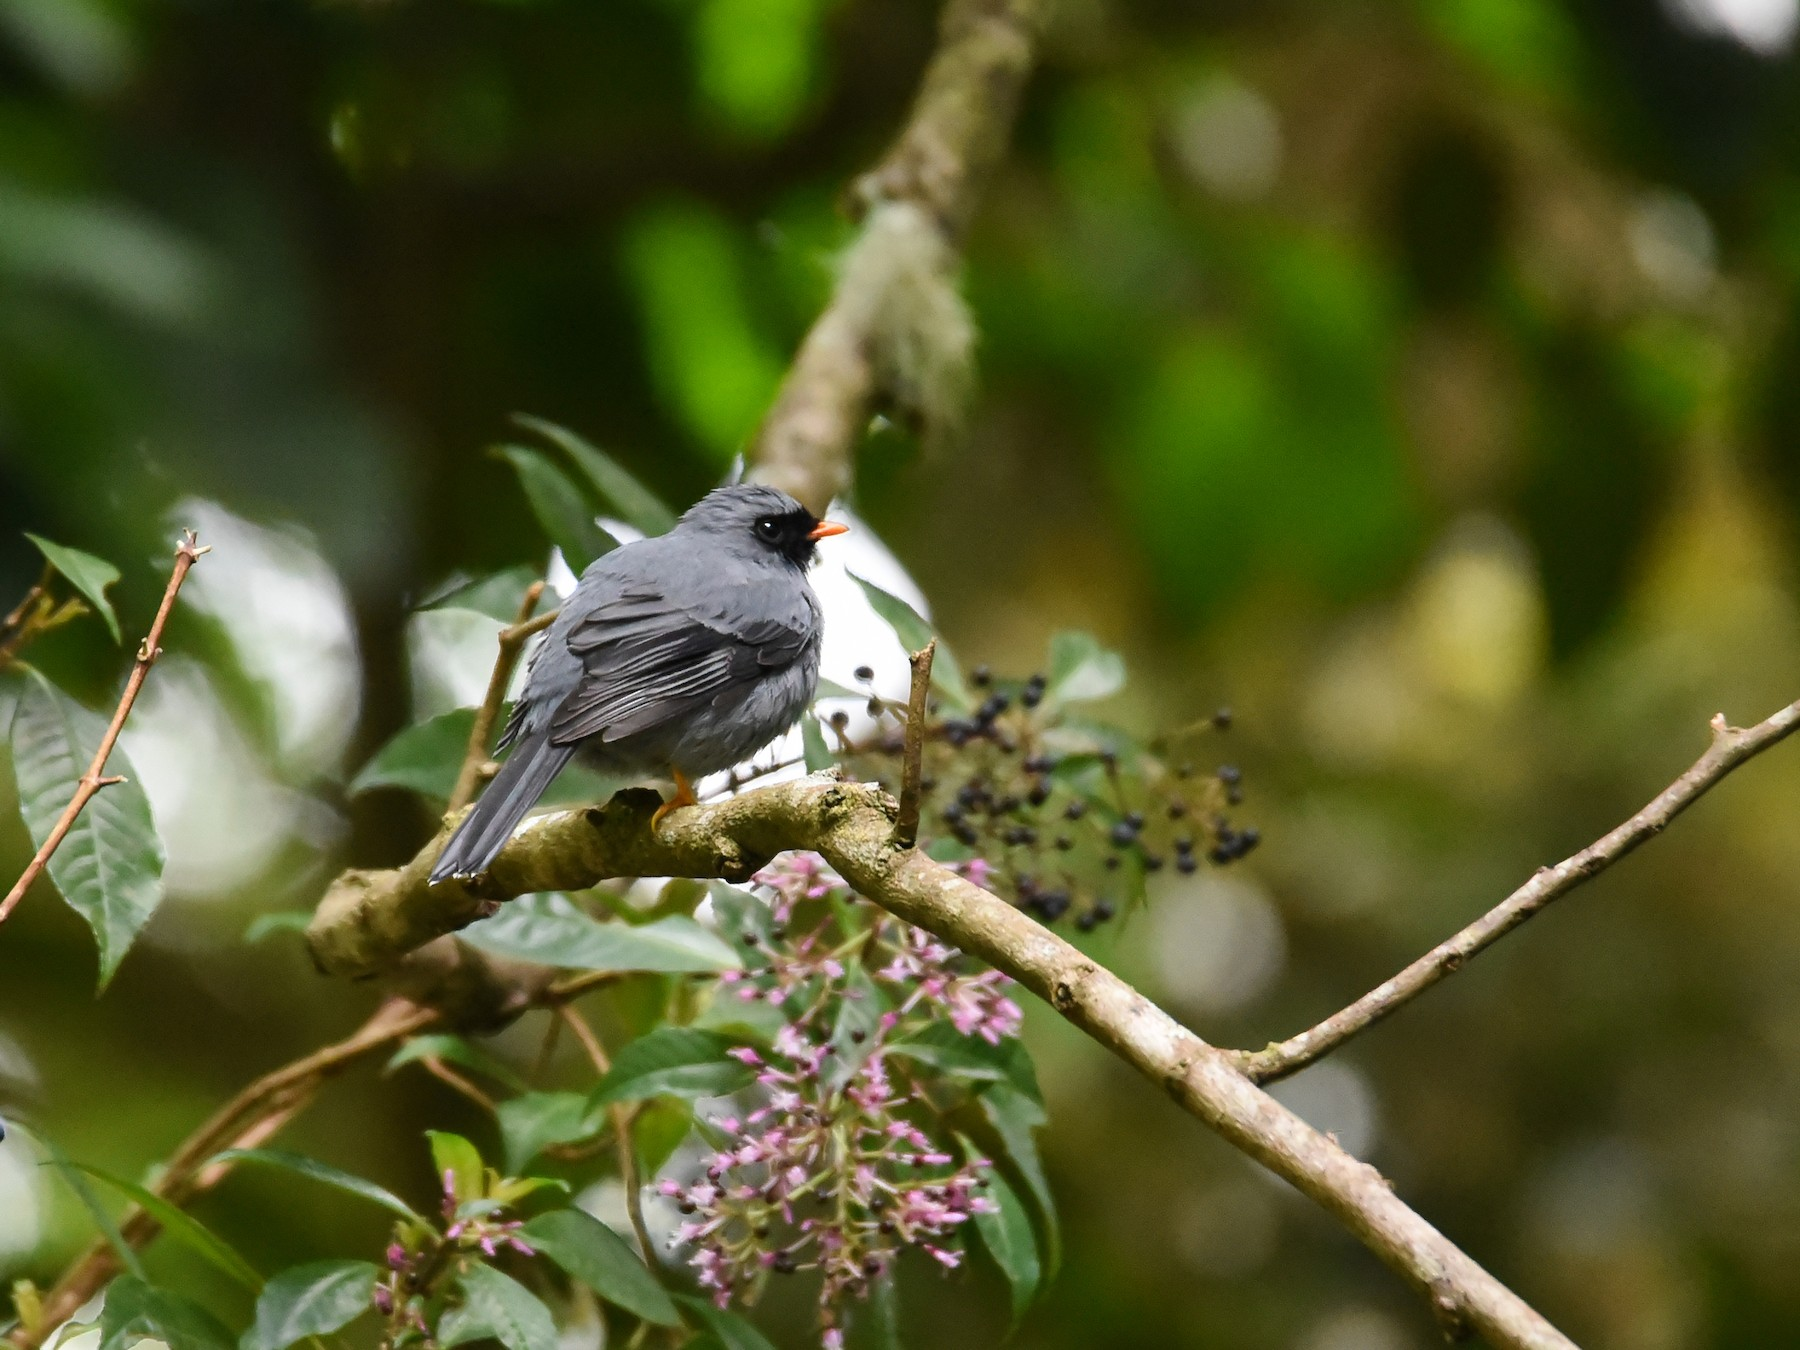 Black-faced Solitaire - Maryse Neukomm